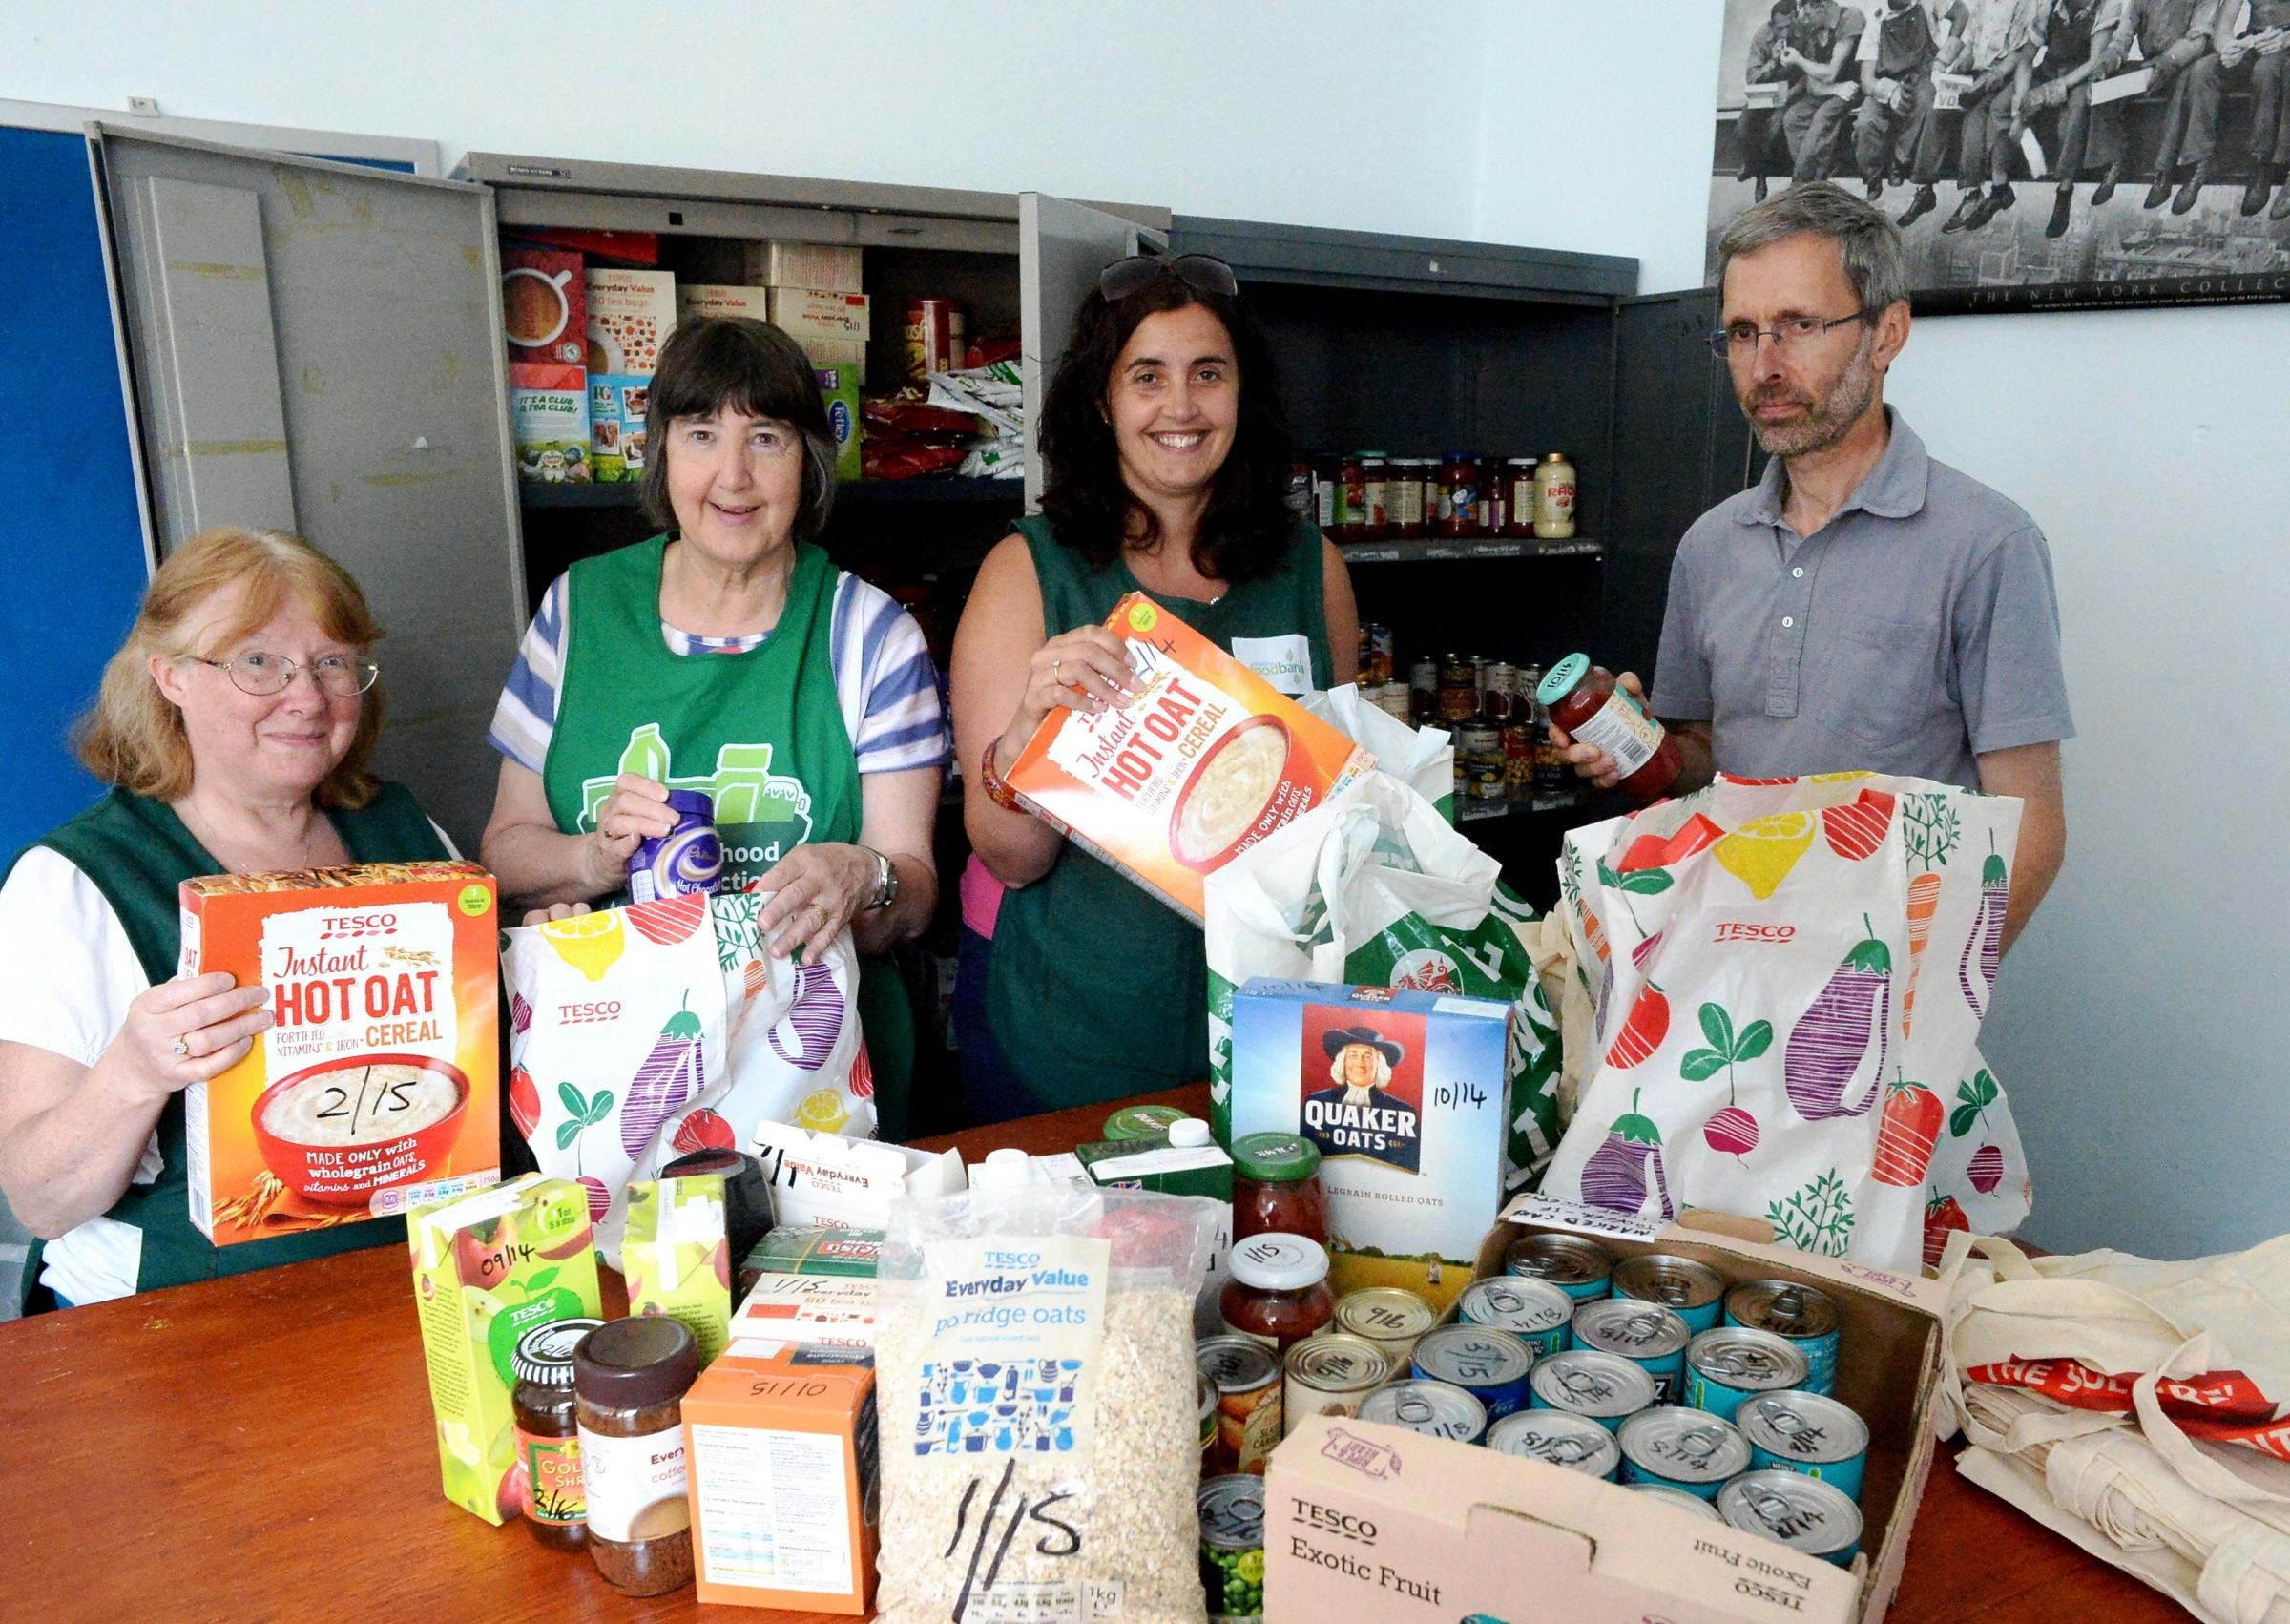 Chepstow foodbank helps feed 1,500